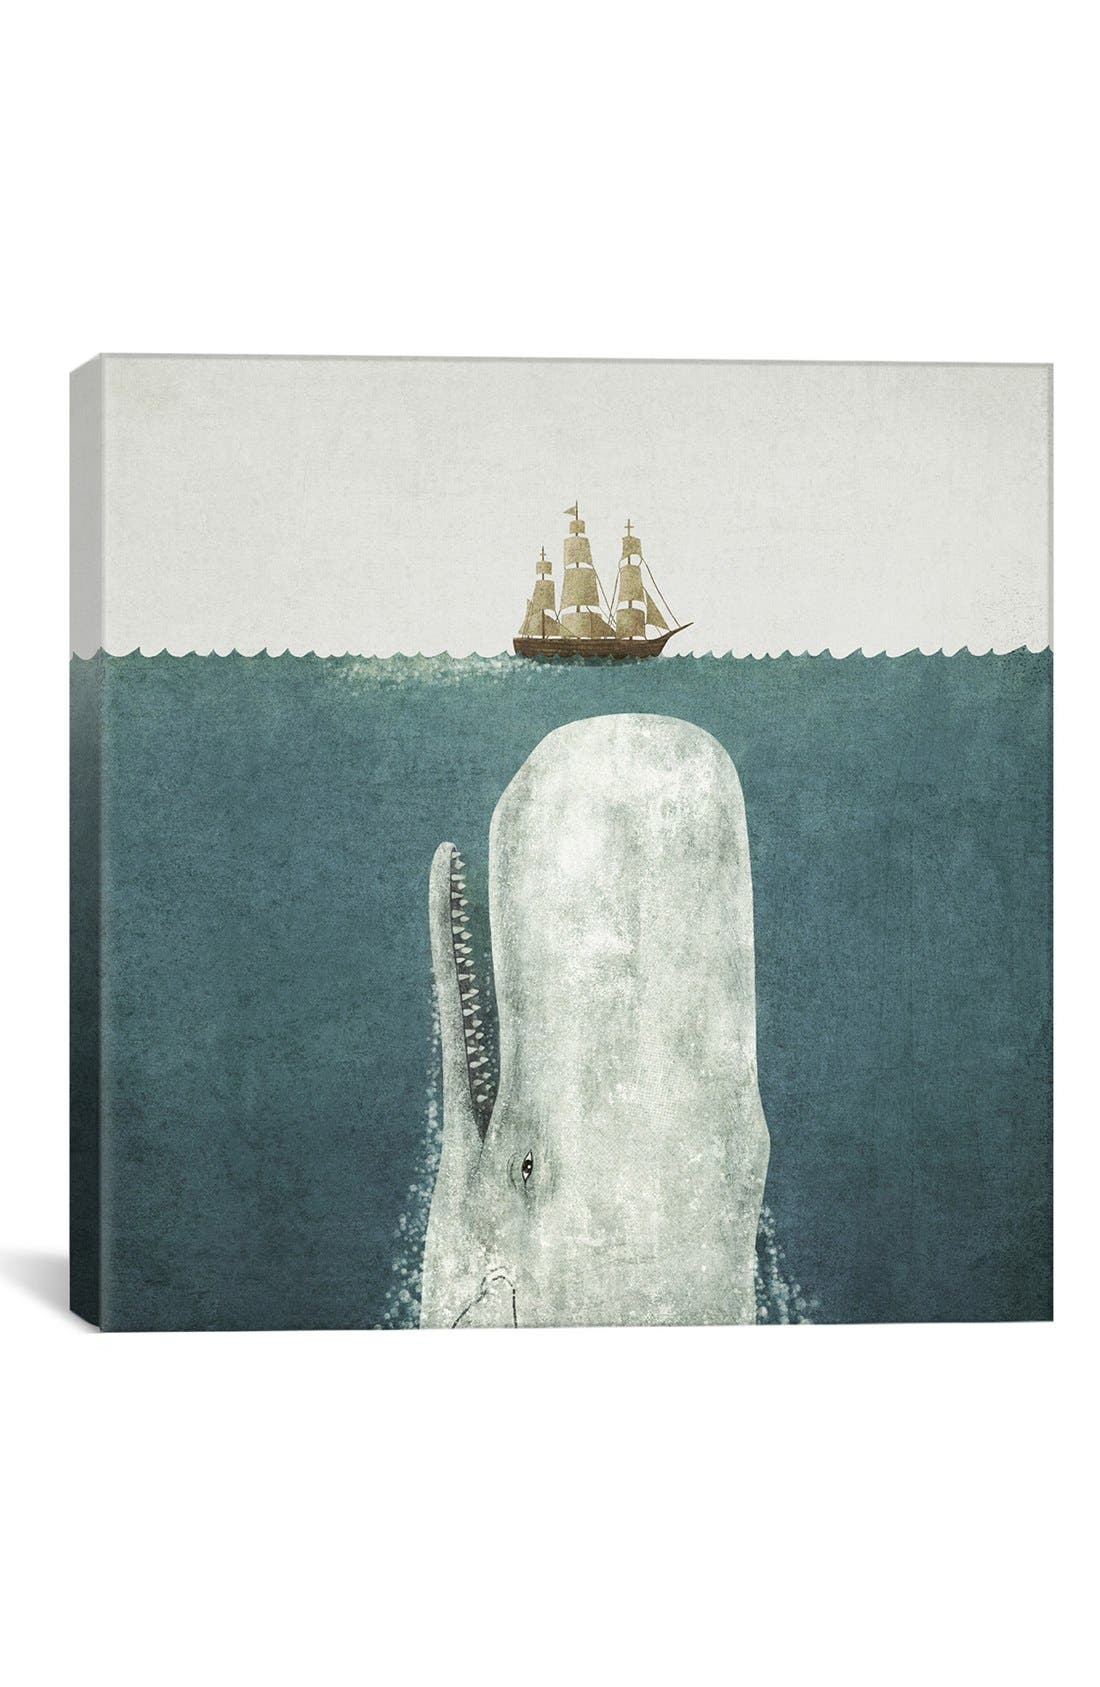 Alternate Image 1 Selected - iCanvas 'White Whale Square - Terry Fan' Giclée Print Canvas Art